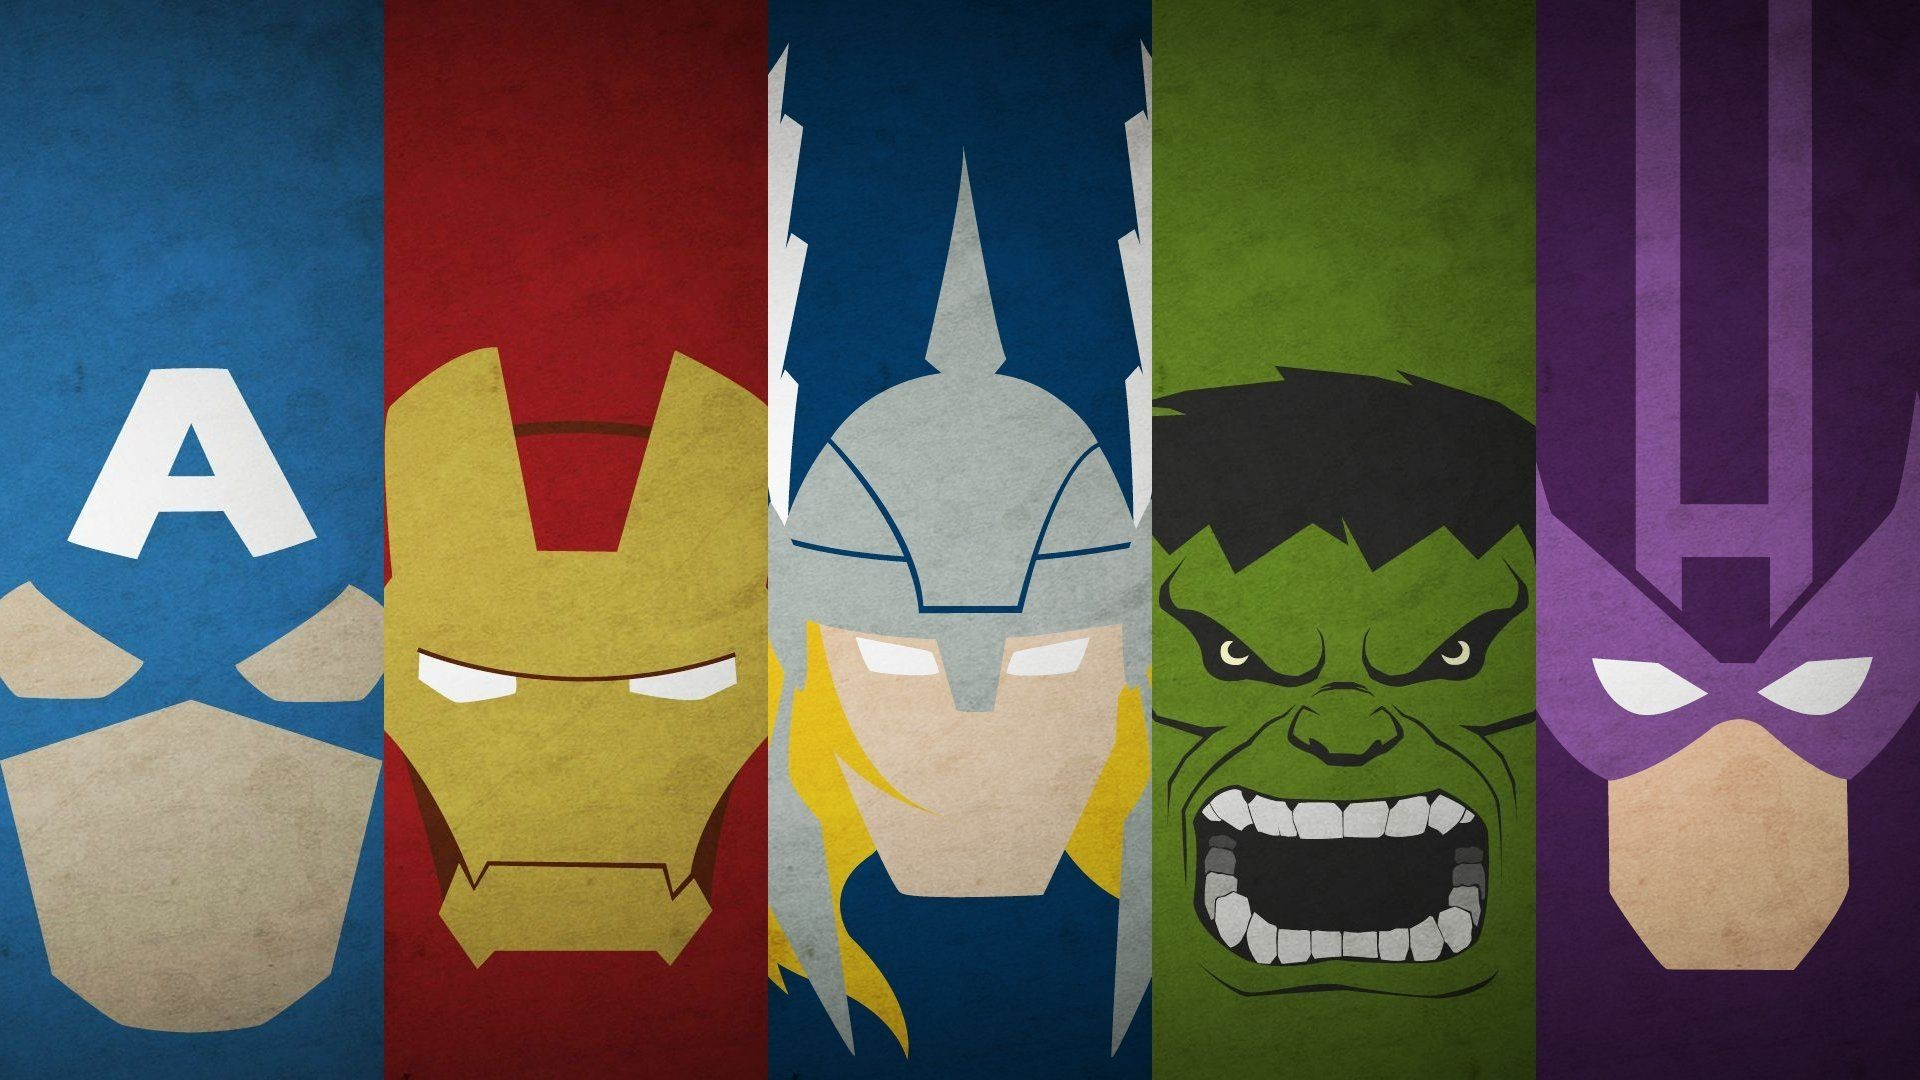 Res: 1920x1080, Wallpapers! Mostly geeky/nerdy stuff nothing too artsy. : pics